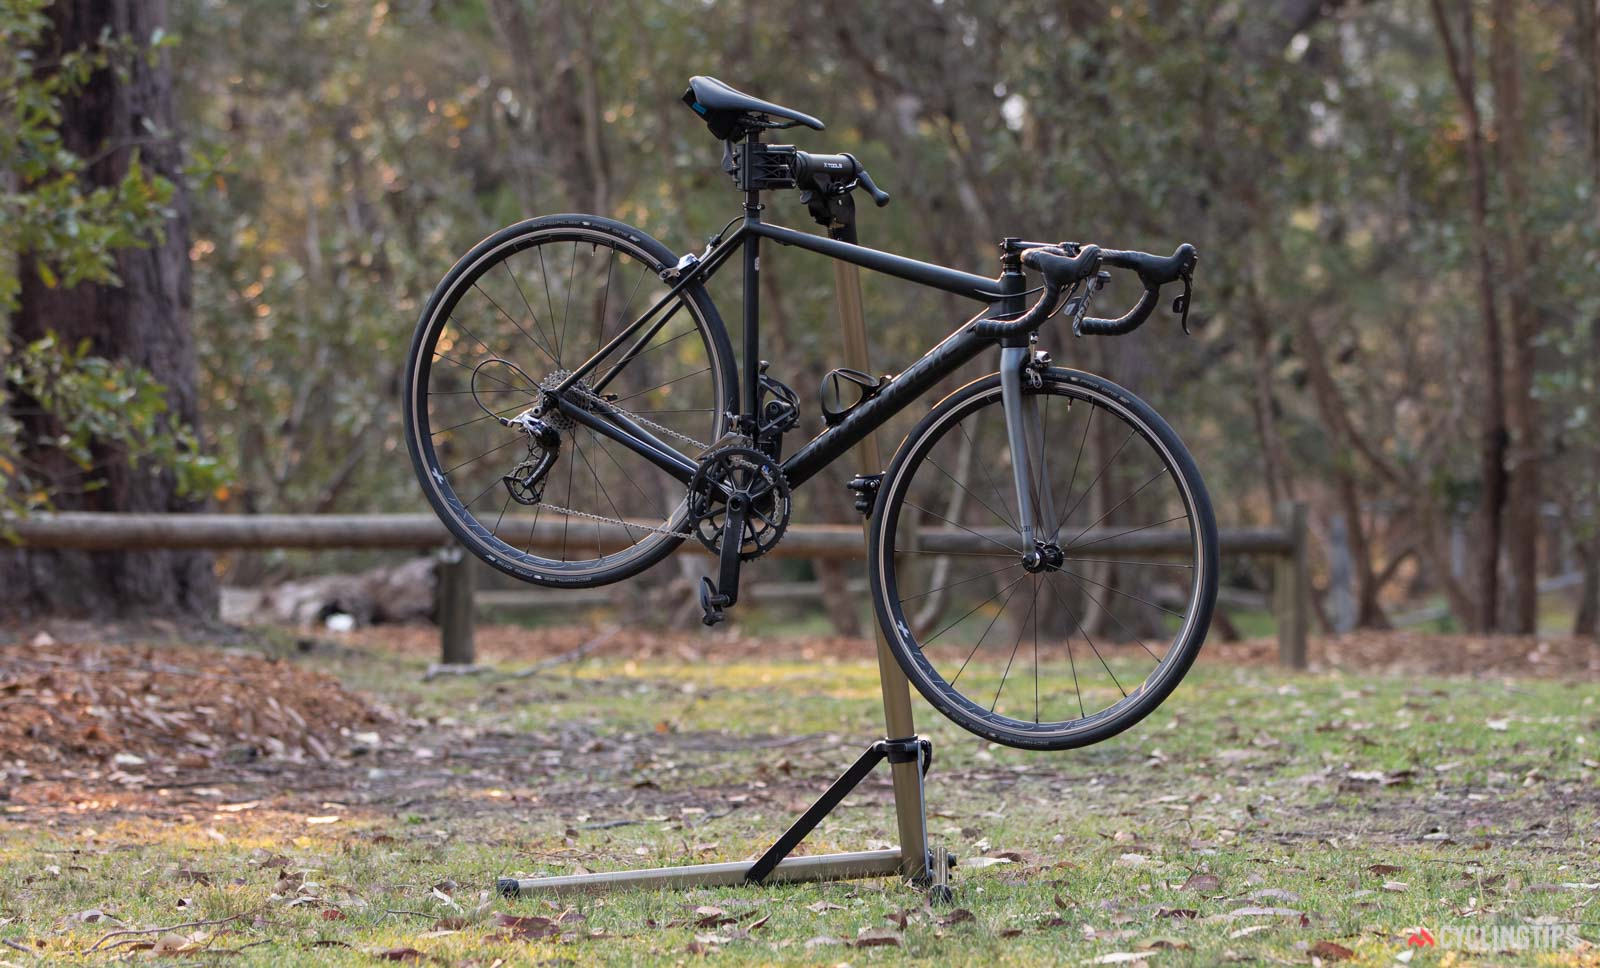 Budget repair stands: X-Tools Home Mechanic Prep Repair Stand with bike